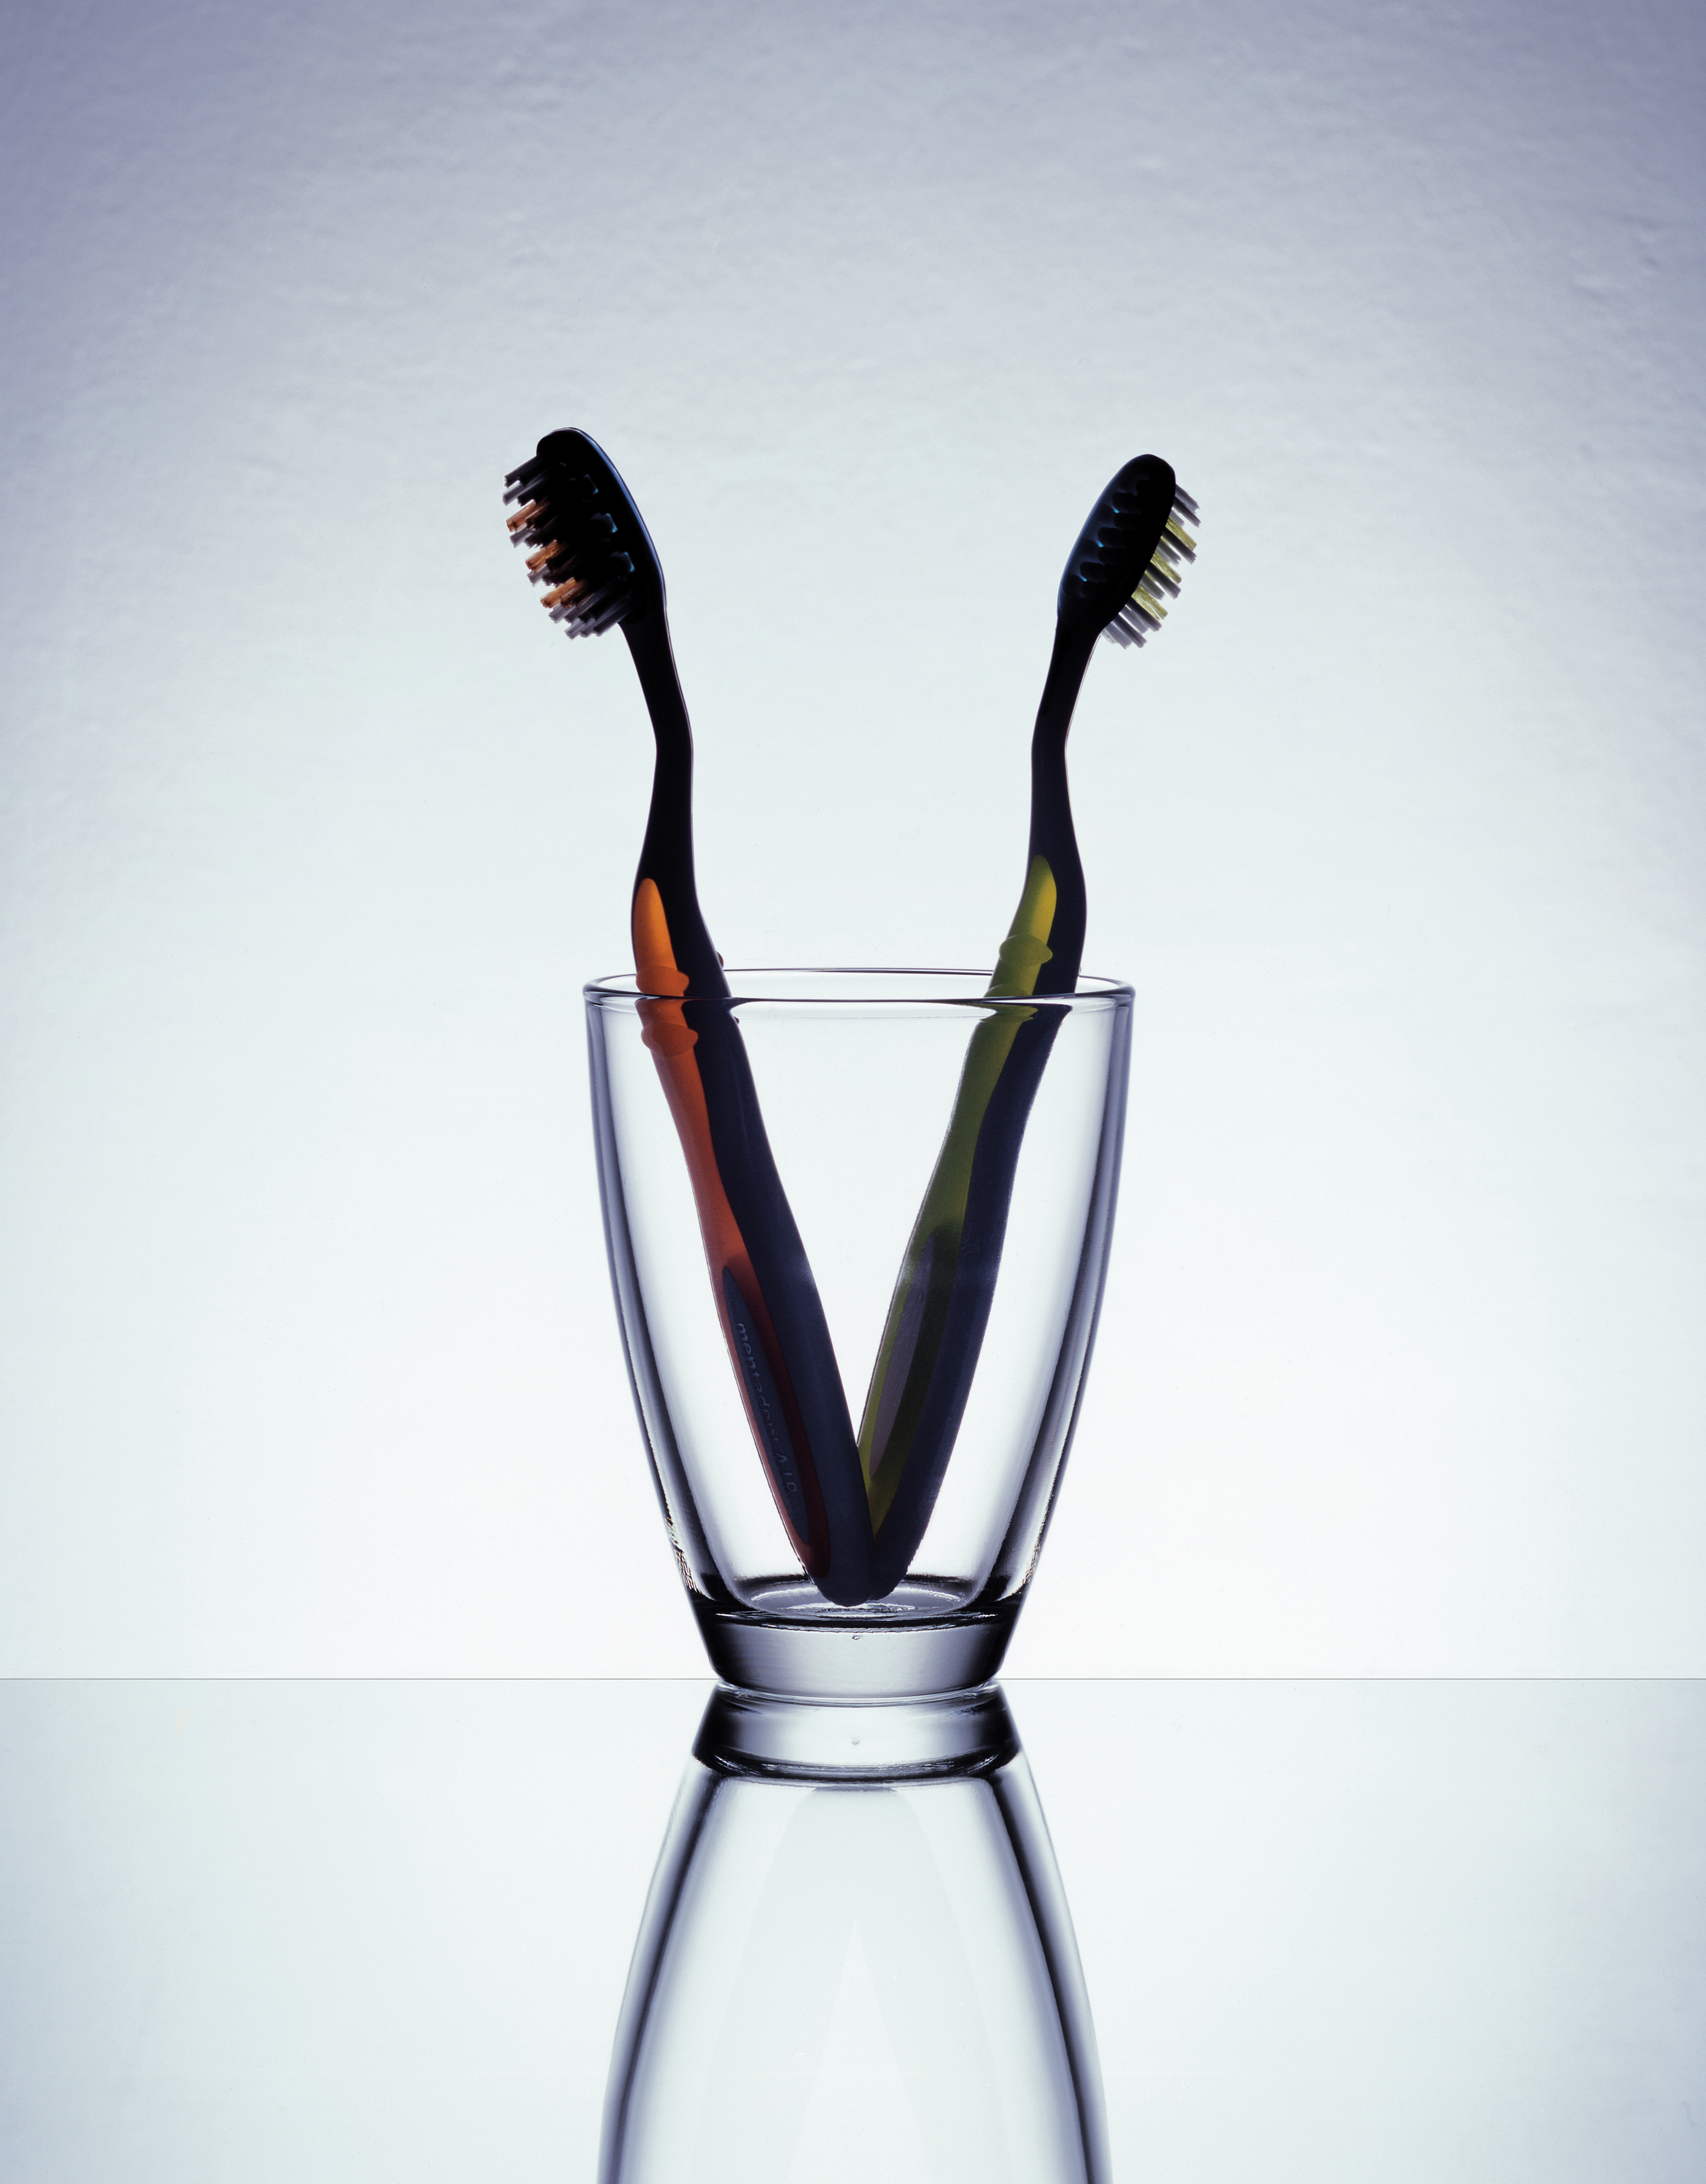 toothbrush 10 (Surprising!) Ways To Use A Toothbrush in Your Beauty Routine